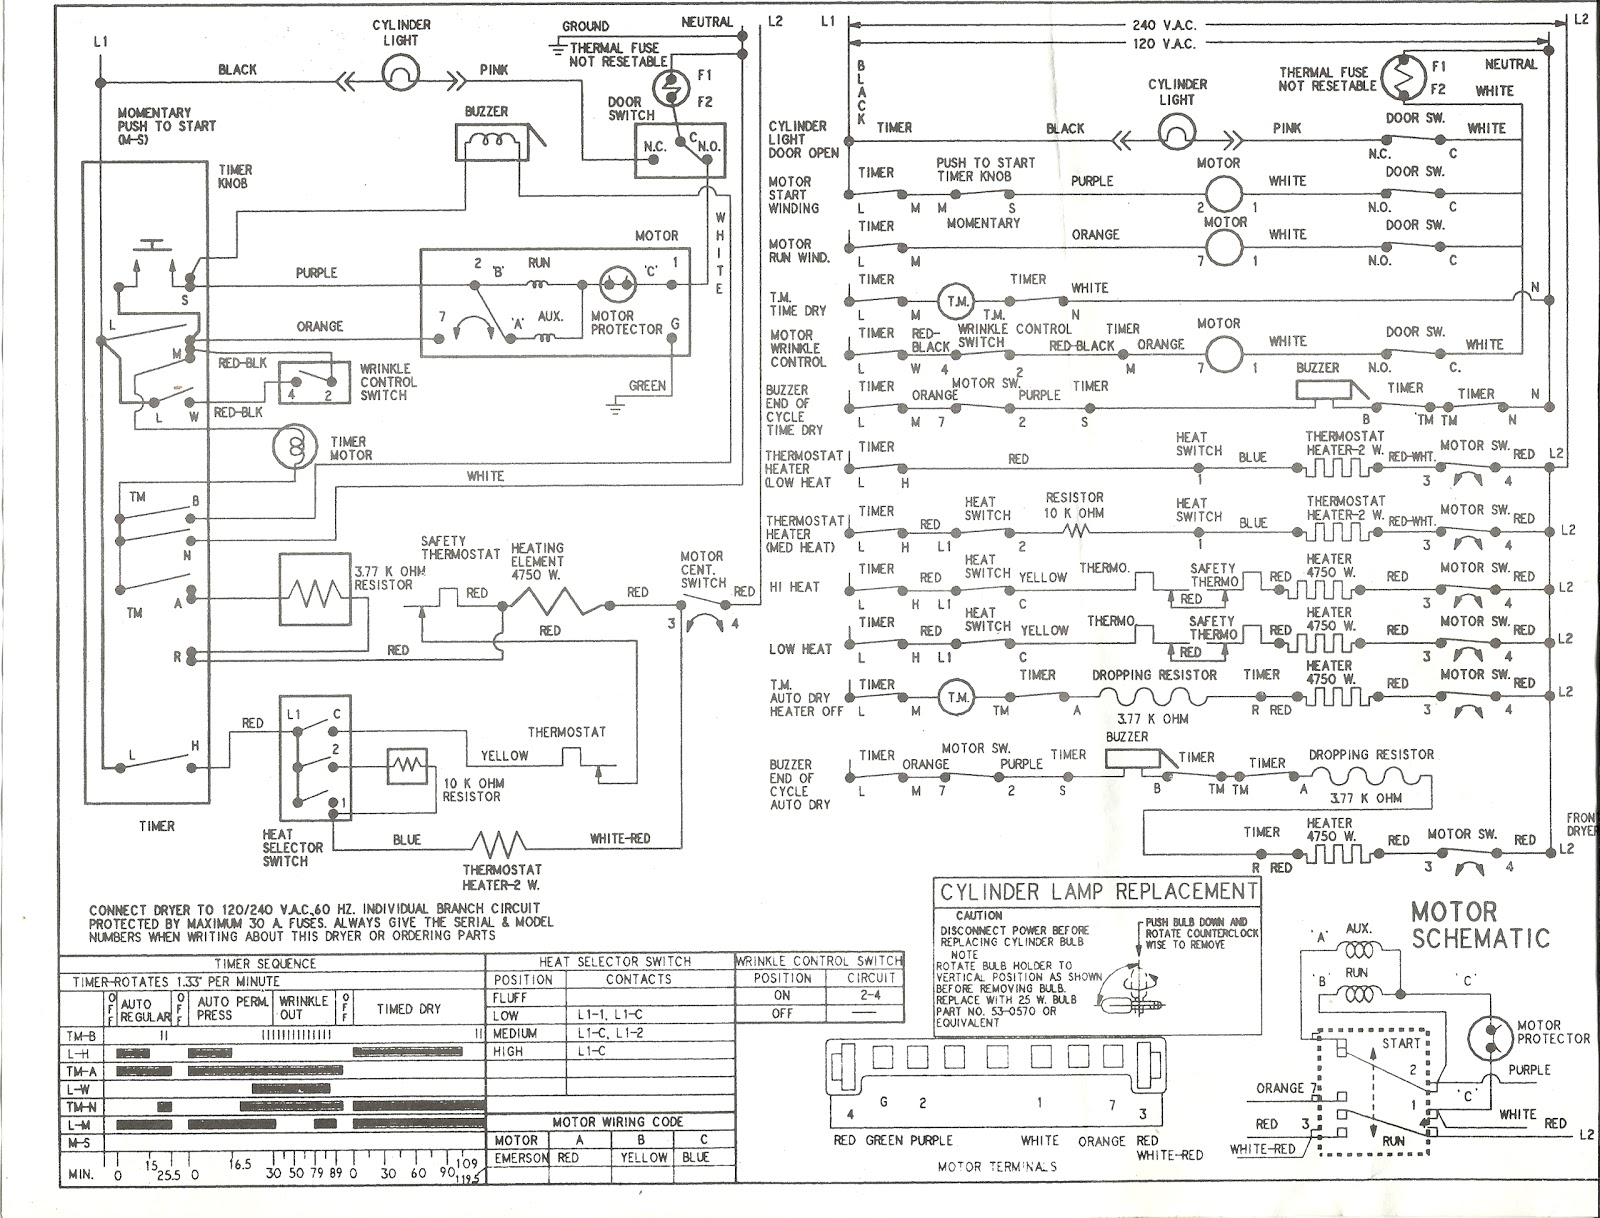 appliance talk kenmore series electric dryer wiring diagram schematic rh blog applianceoutletservice com kenmore dryer wiring diagram 77950110 kenmore dryer electrical diagram